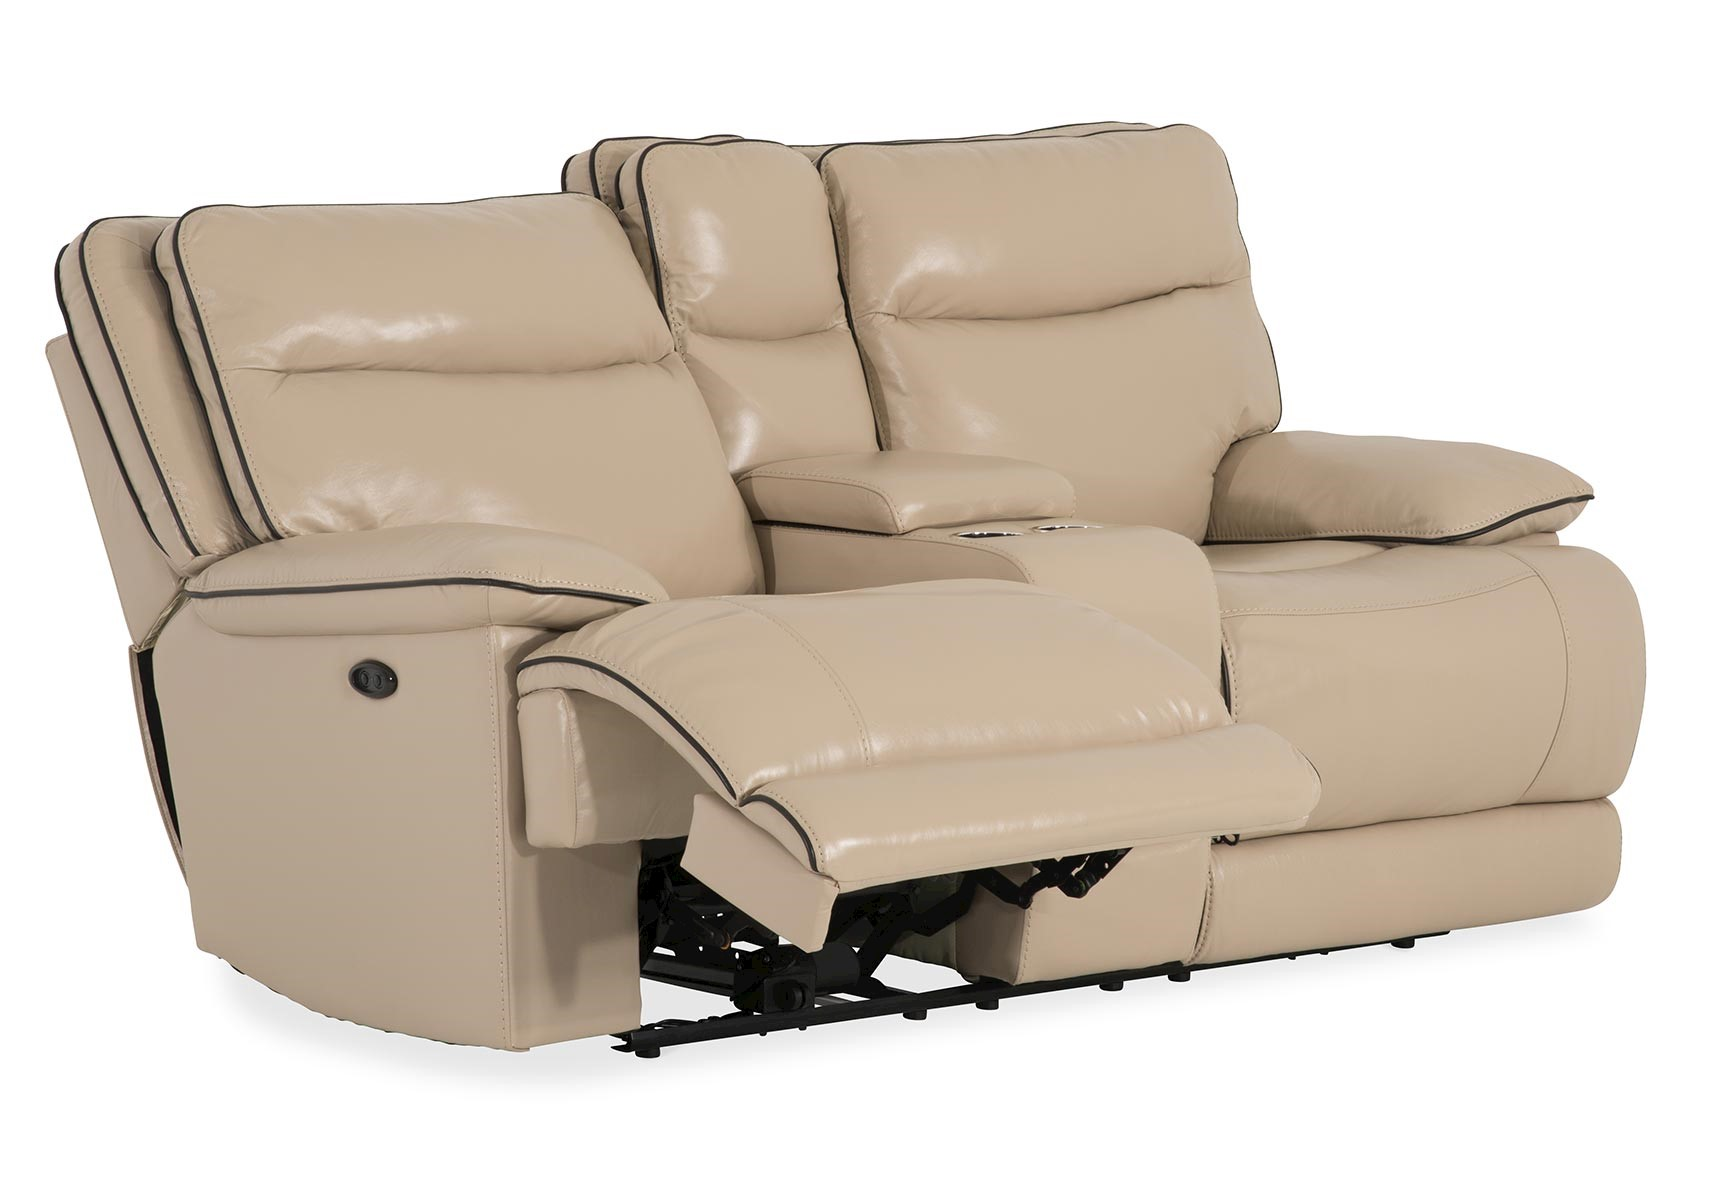 Owen Dual Reclining Loveseat. Living Room u003e Couches/Sofas. Share this product X  sc 1 st  Lacks & Lacks | Owen Dual Reclining Loveseat islam-shia.org